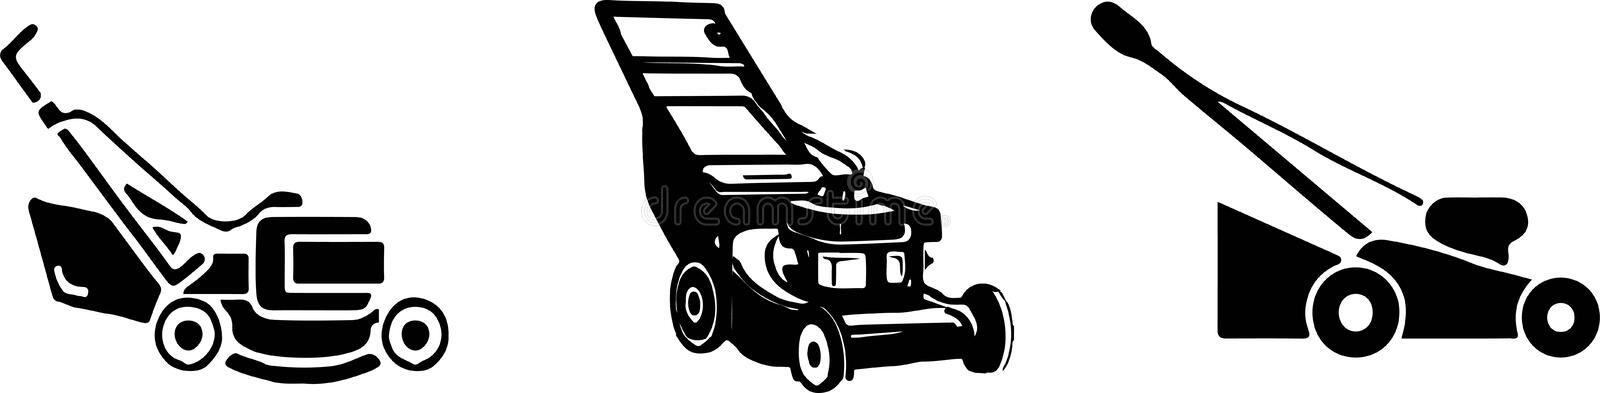 Lawn mower icon on white background. Lawn,machine,mower vector illustration